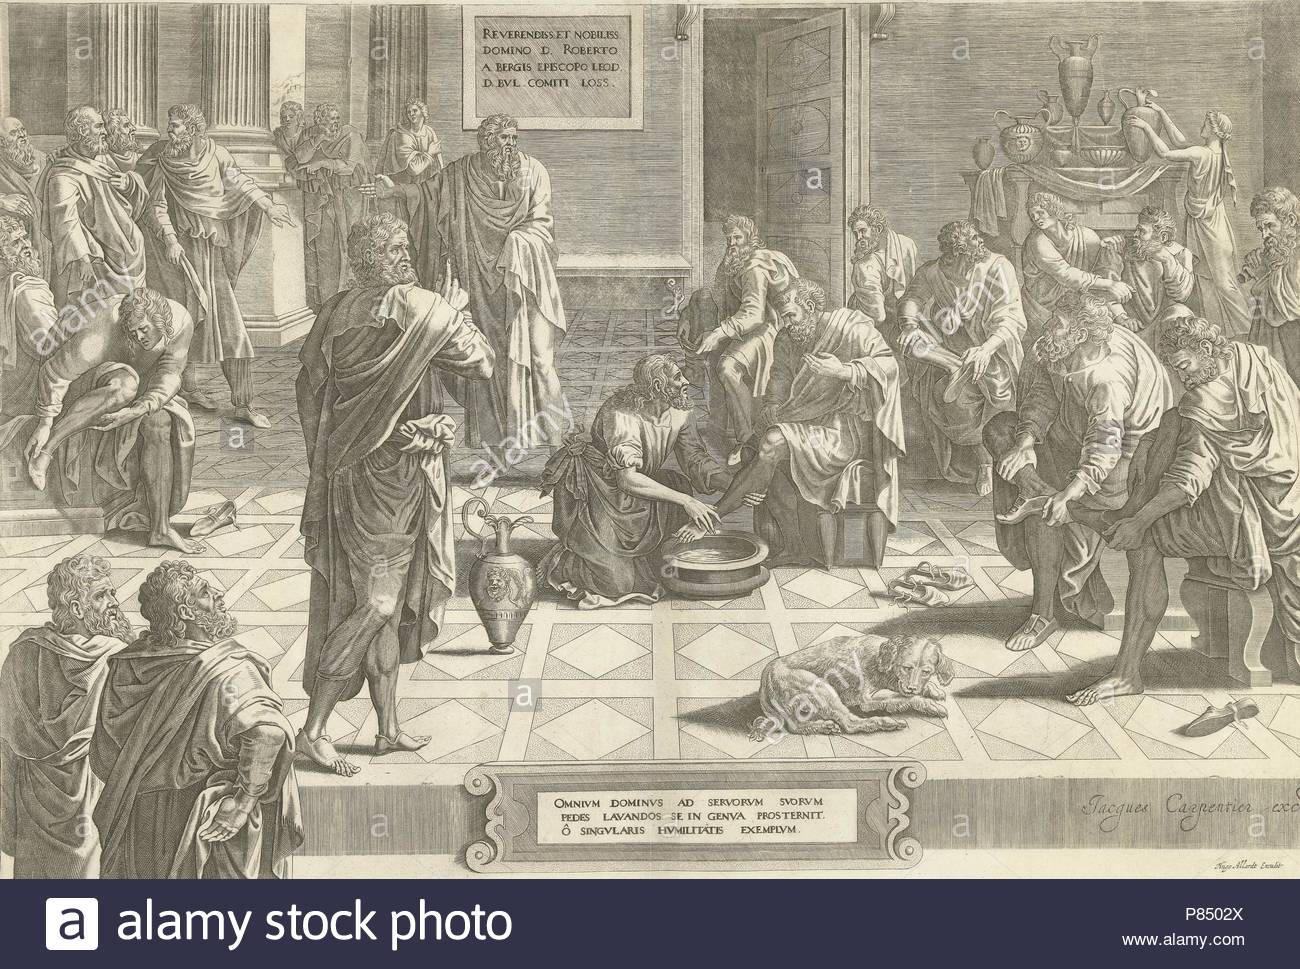 Christ washes the feet of the disciples, print maker: Anonymous, Hans Collaert I attributed to, Lambert Lombard, c. 1640 - c. 1684. - Stock Image